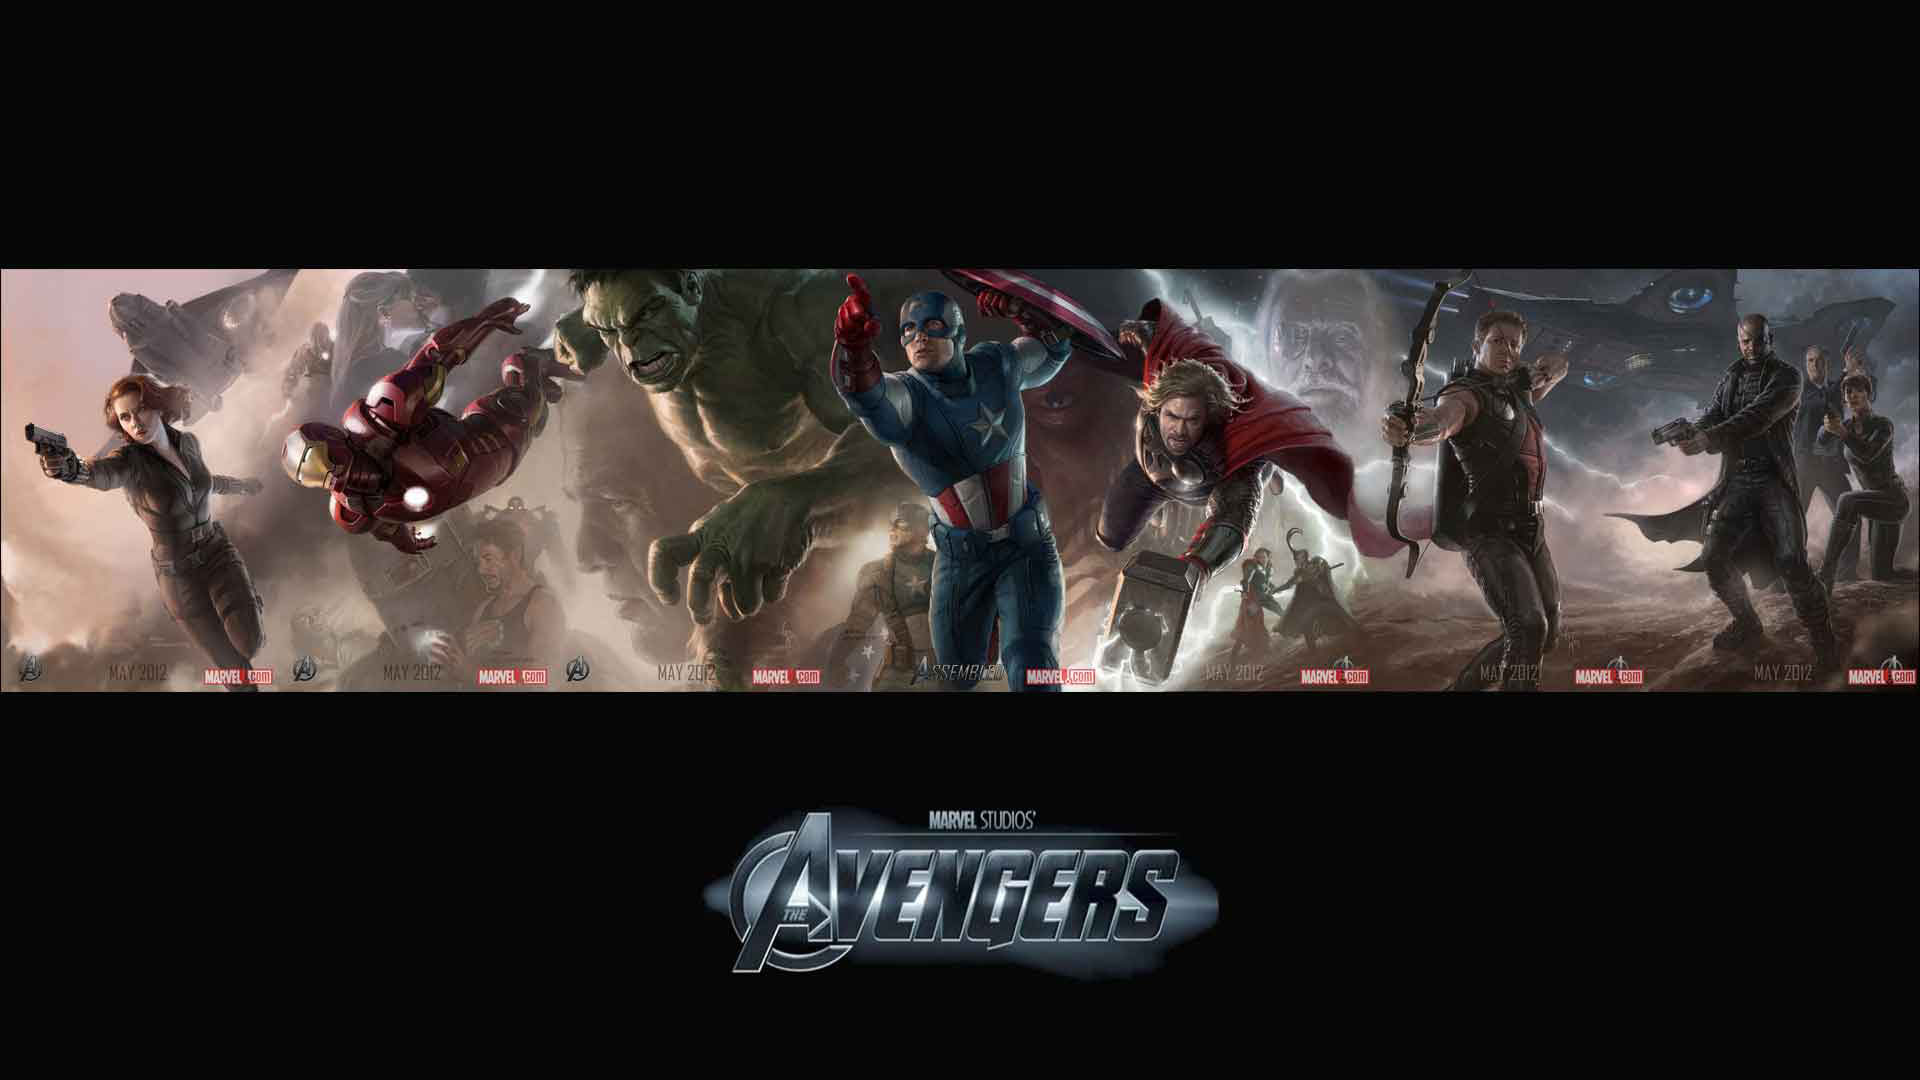 The Avengers Desktop 1920x1080 Wallpapers 1920x1080 Wallpapers 1920x1080